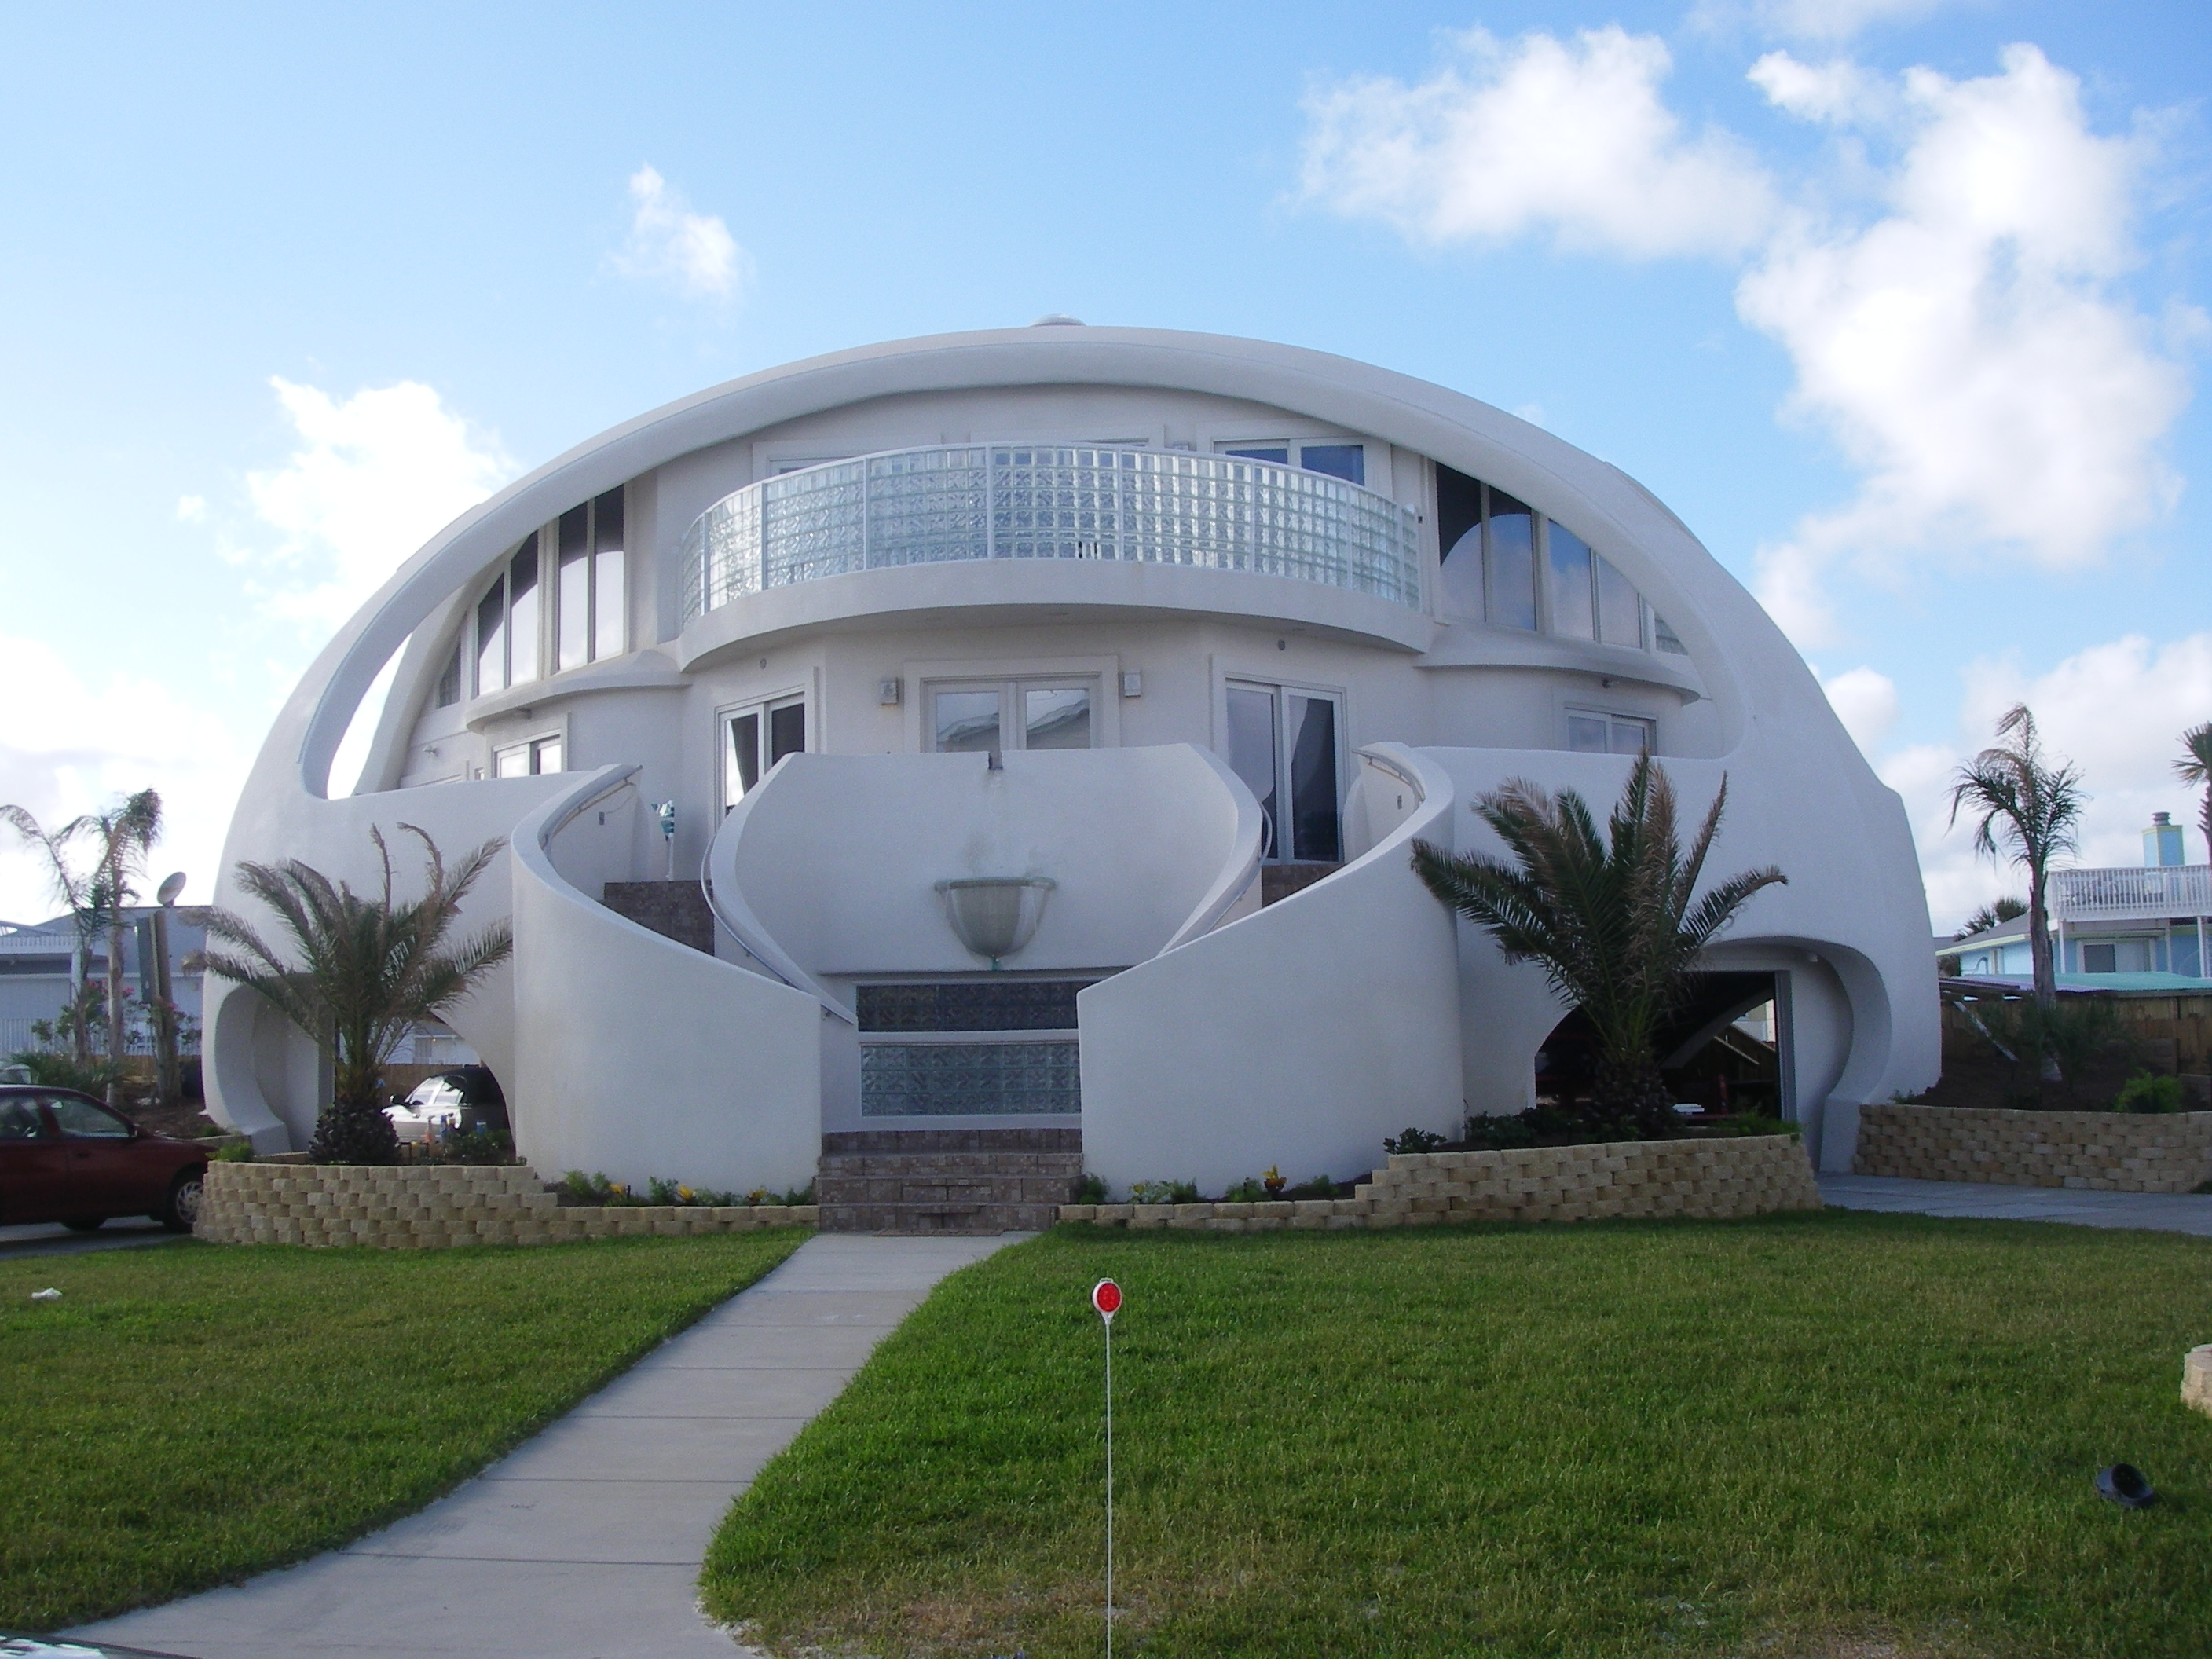 12 unusual homes from around the world home highlight for Best house design for hurricanes